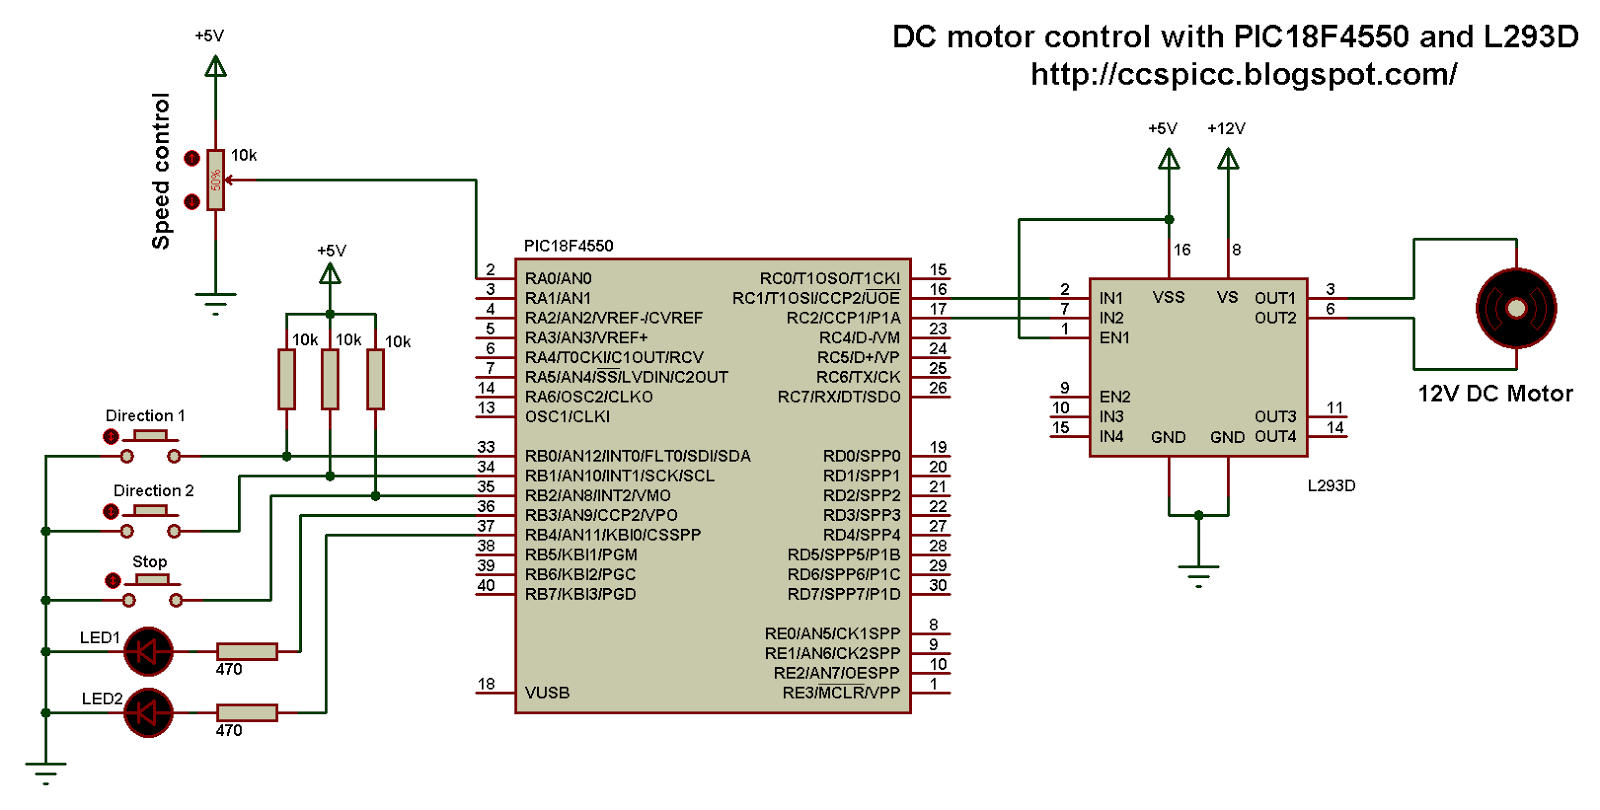 Dc motor control with pic18f4550 and l293d proteus for Two speed motor control